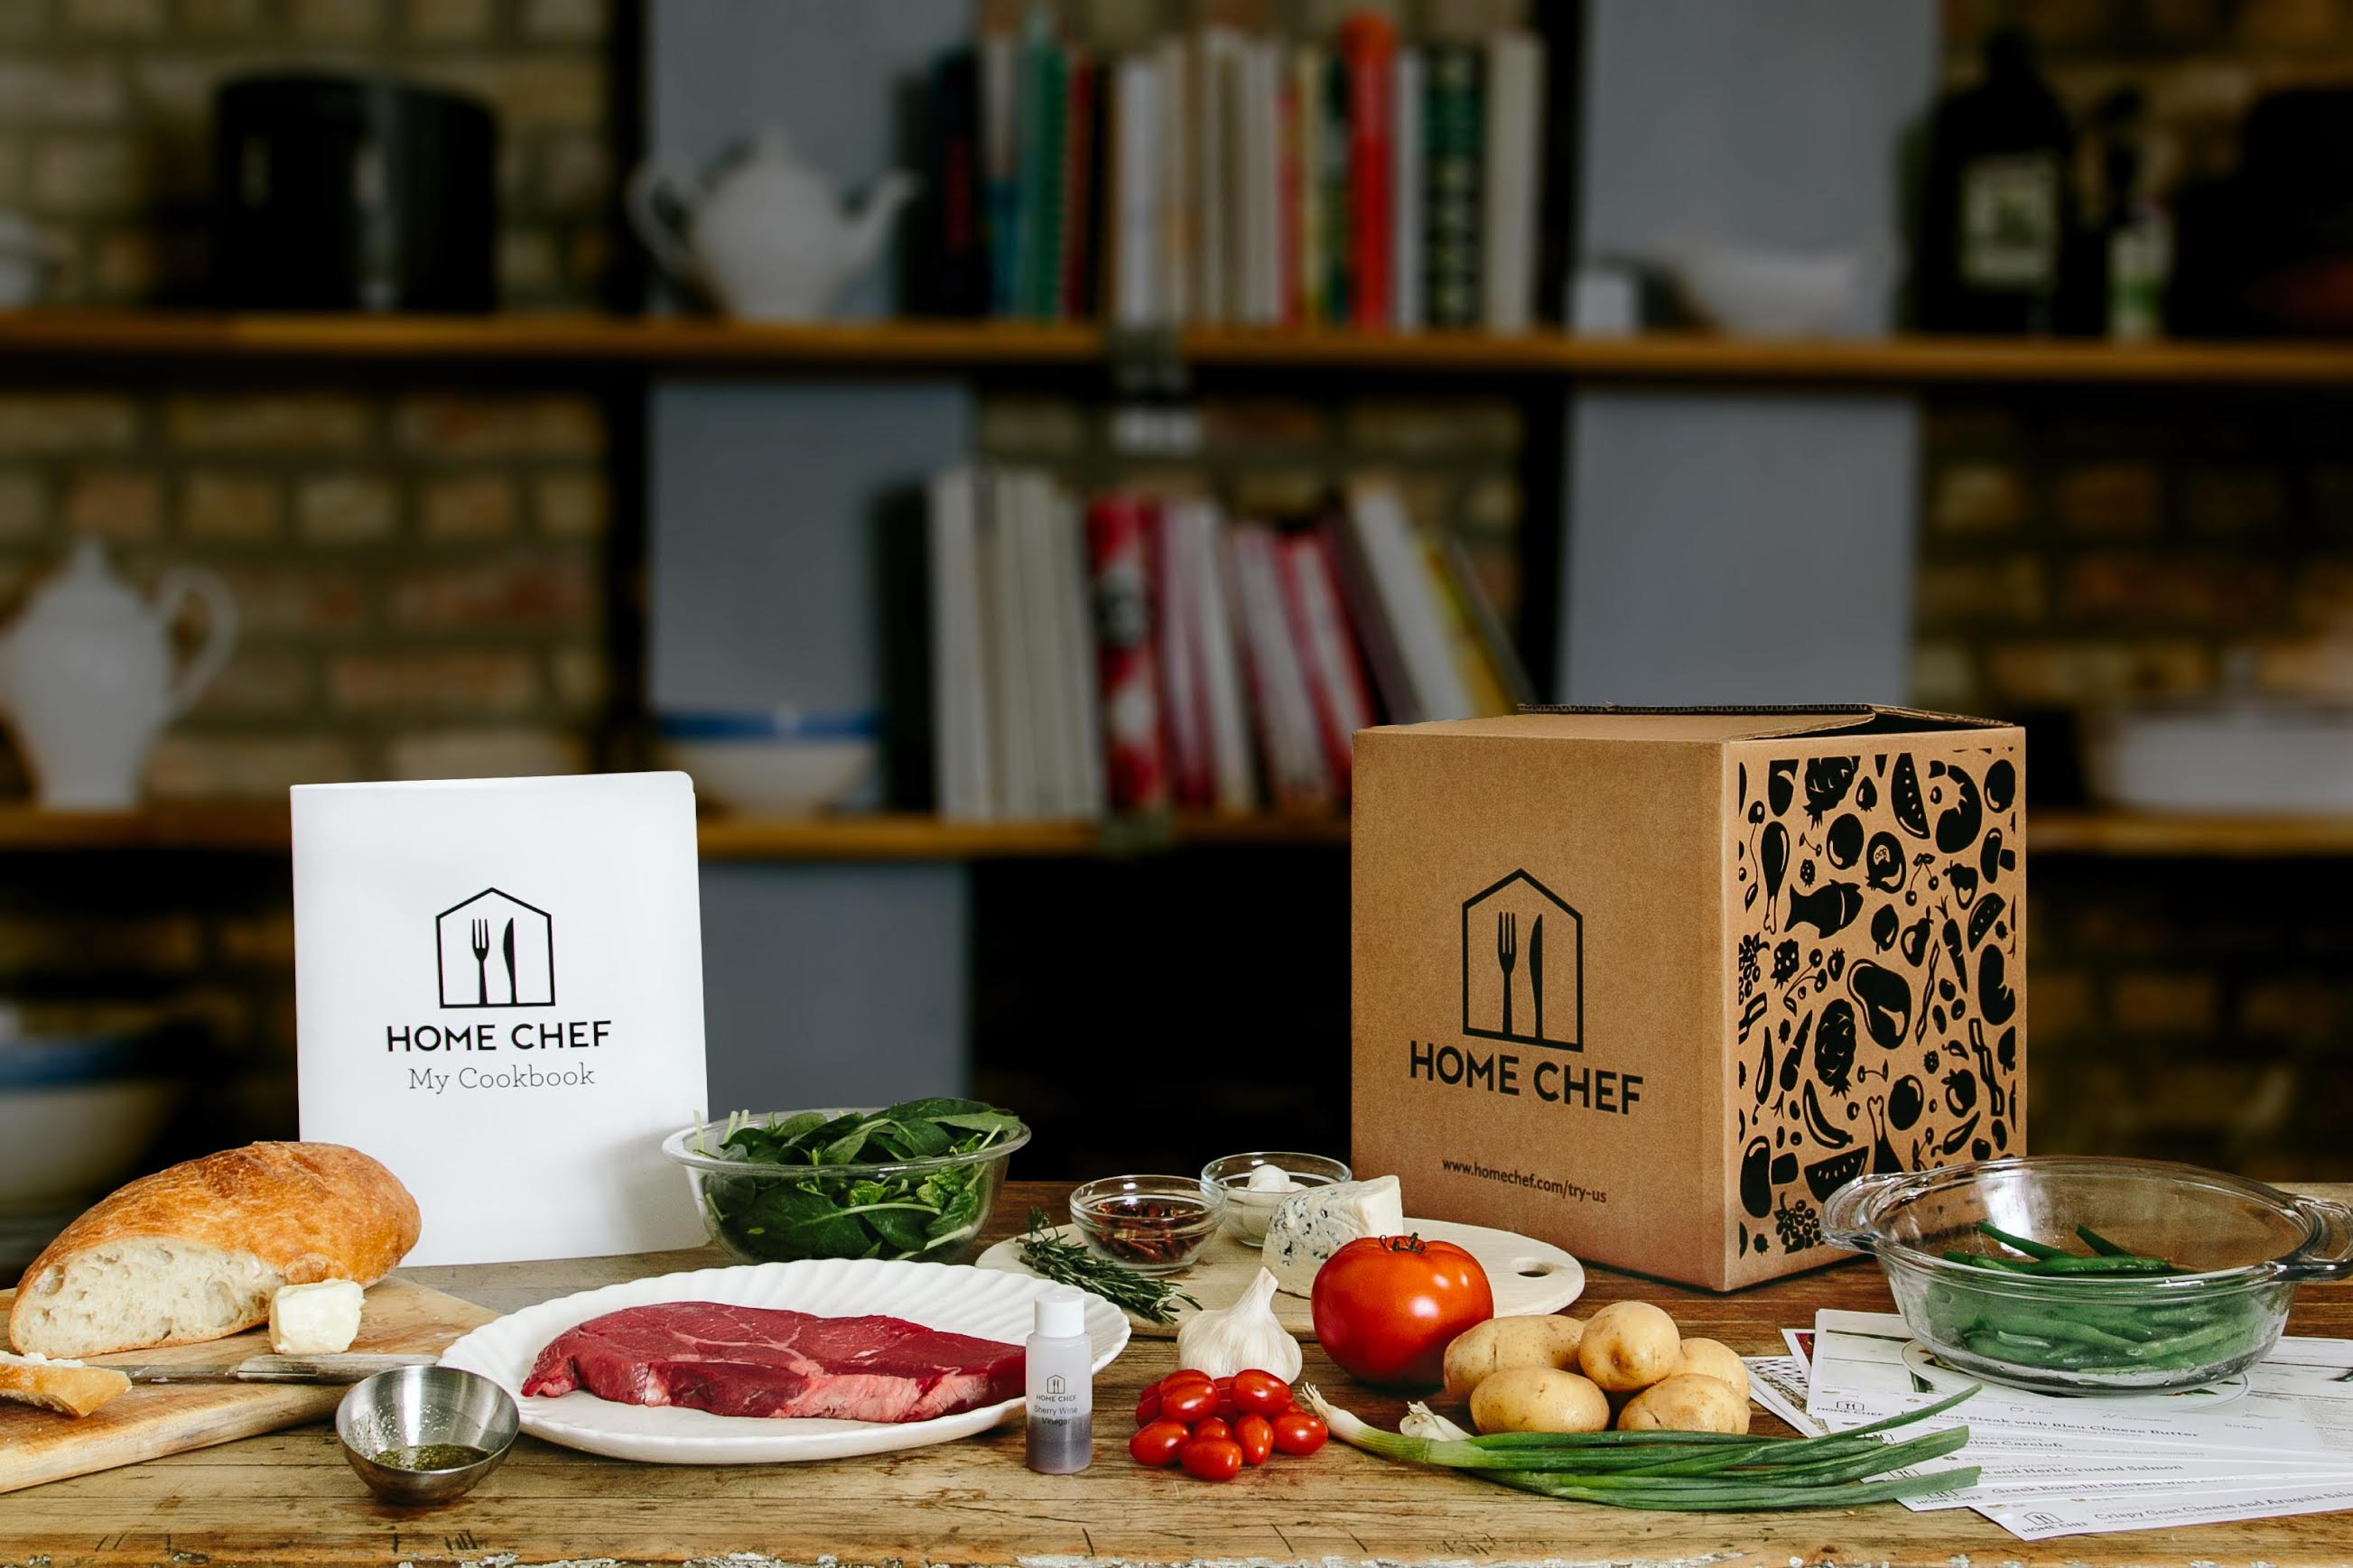 Home Chef is service that delivers pre-cooked meals to customers' doors.